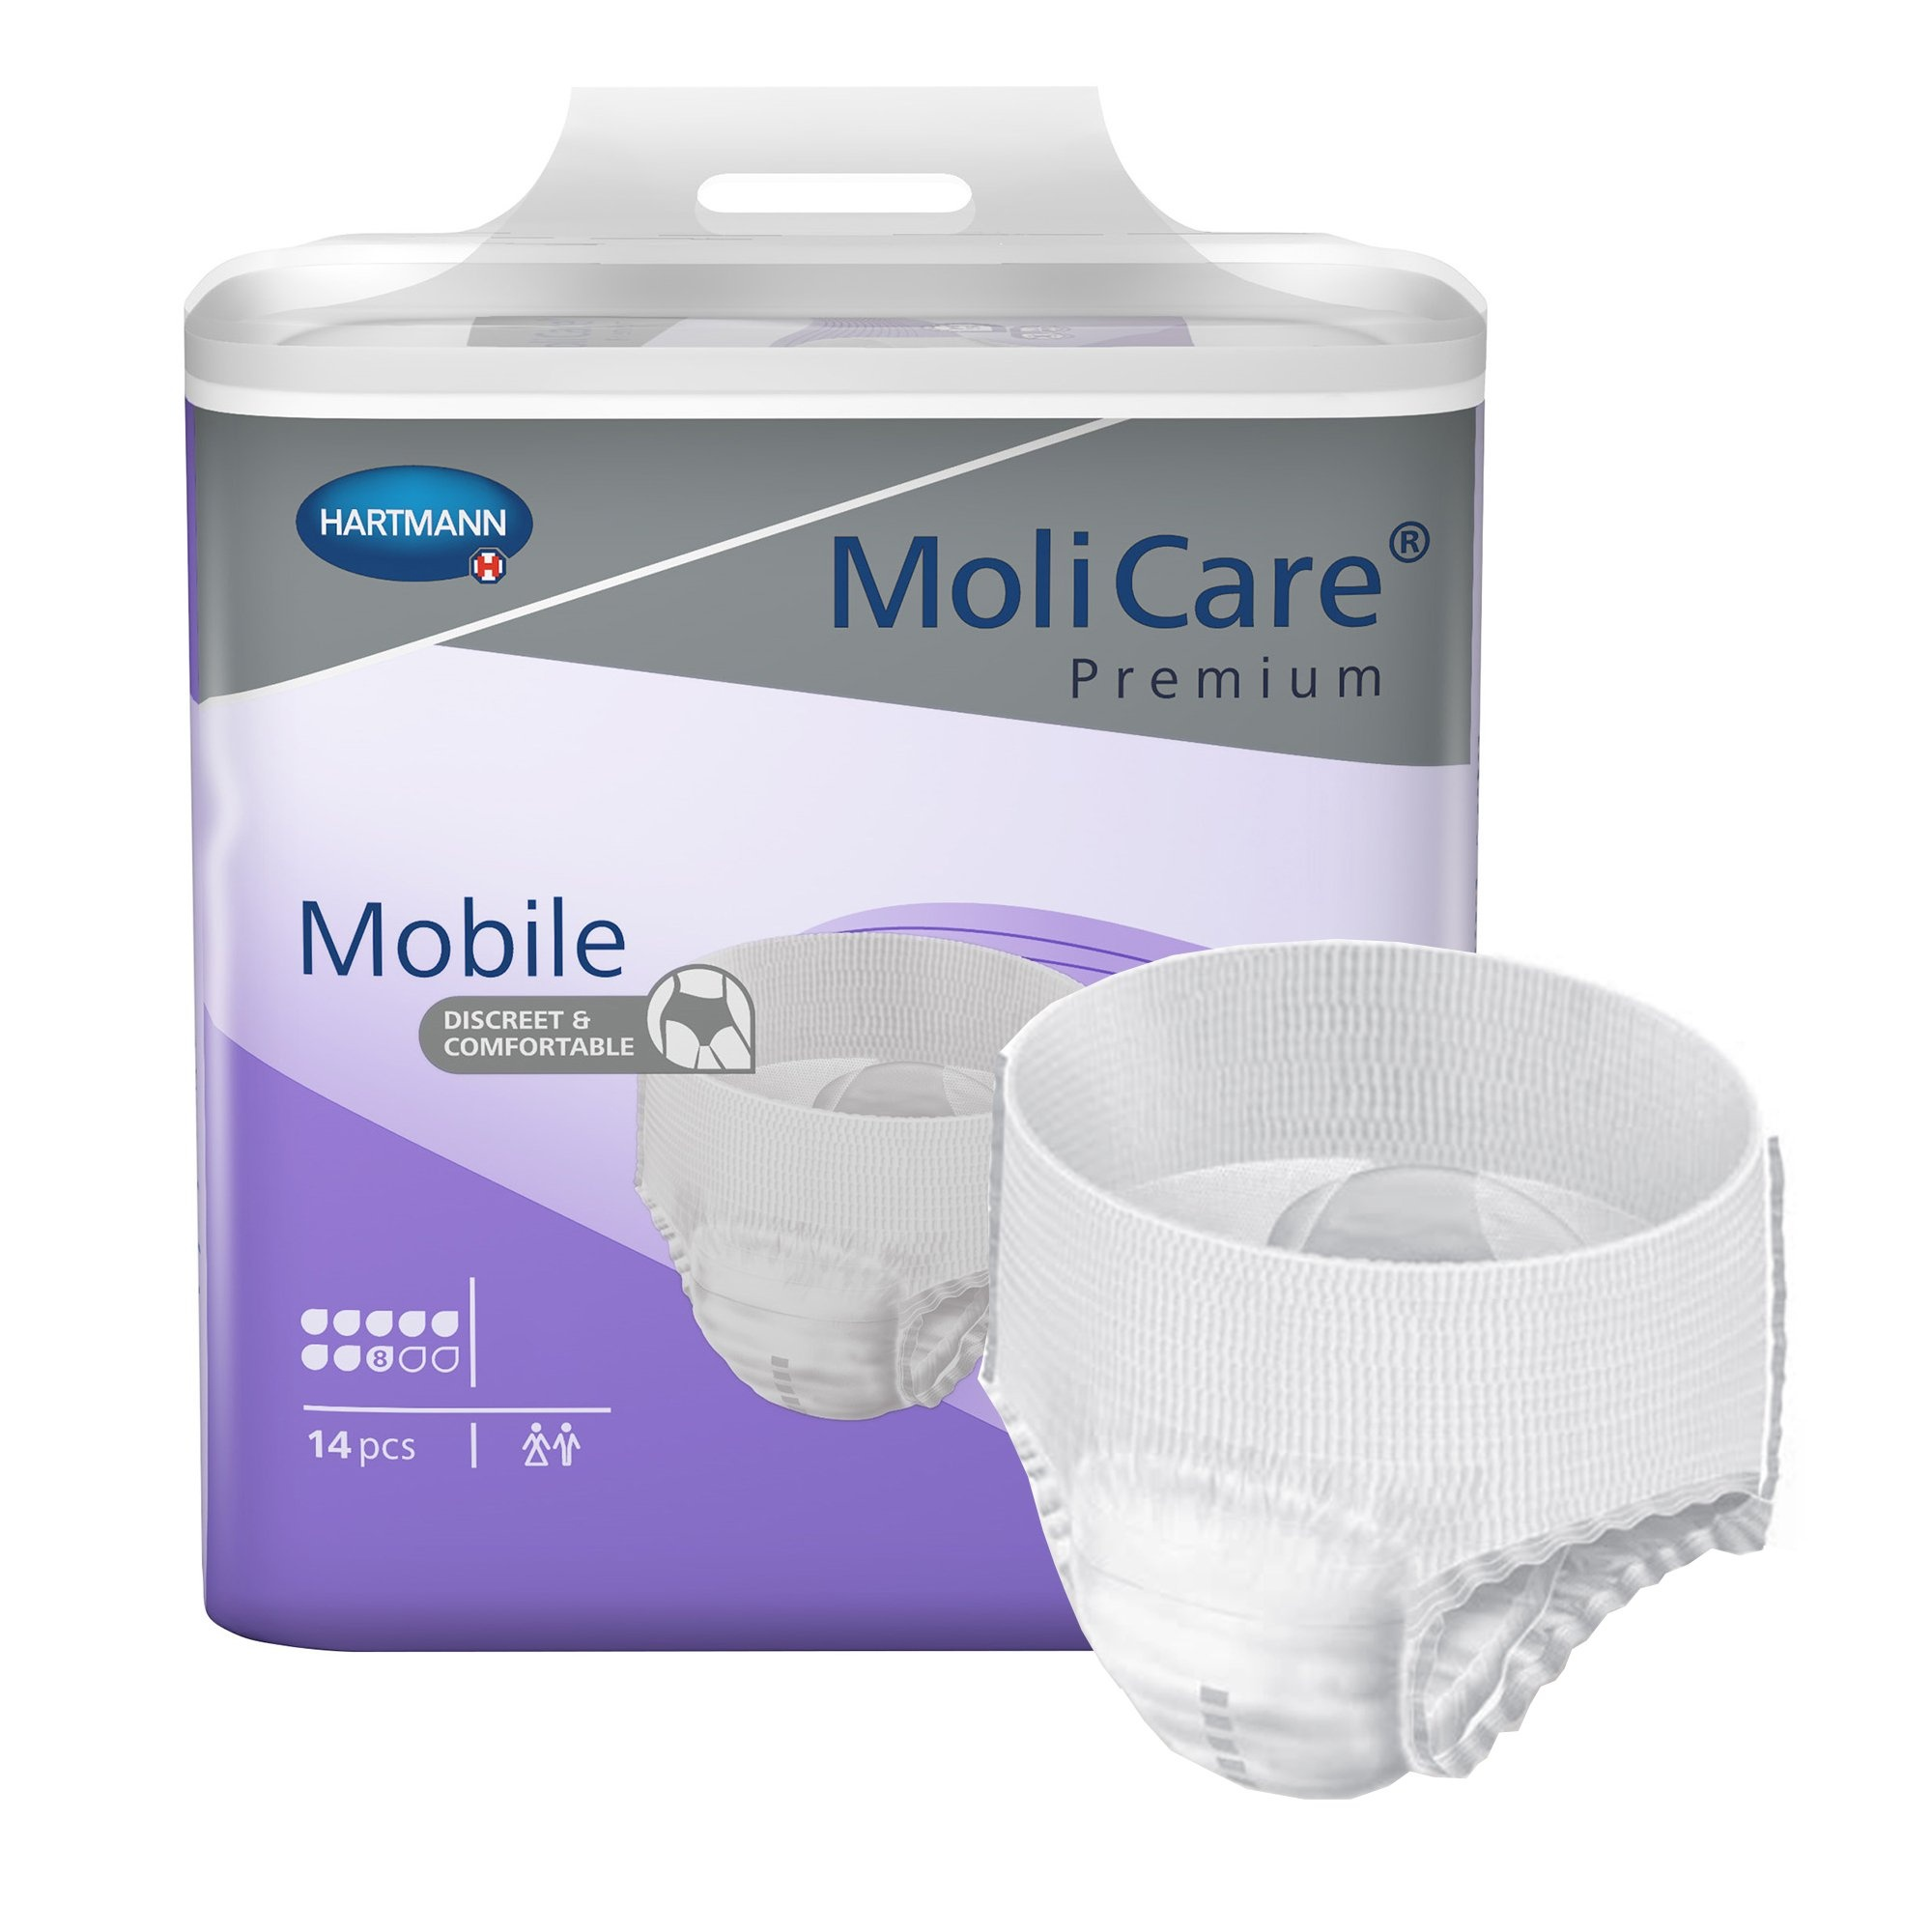 """MoliCare Premium Mobile Pull-Up Underwear, 8 Drops Heavy Absorbency, 915873, Large (39-59"""") - Case of 56"""